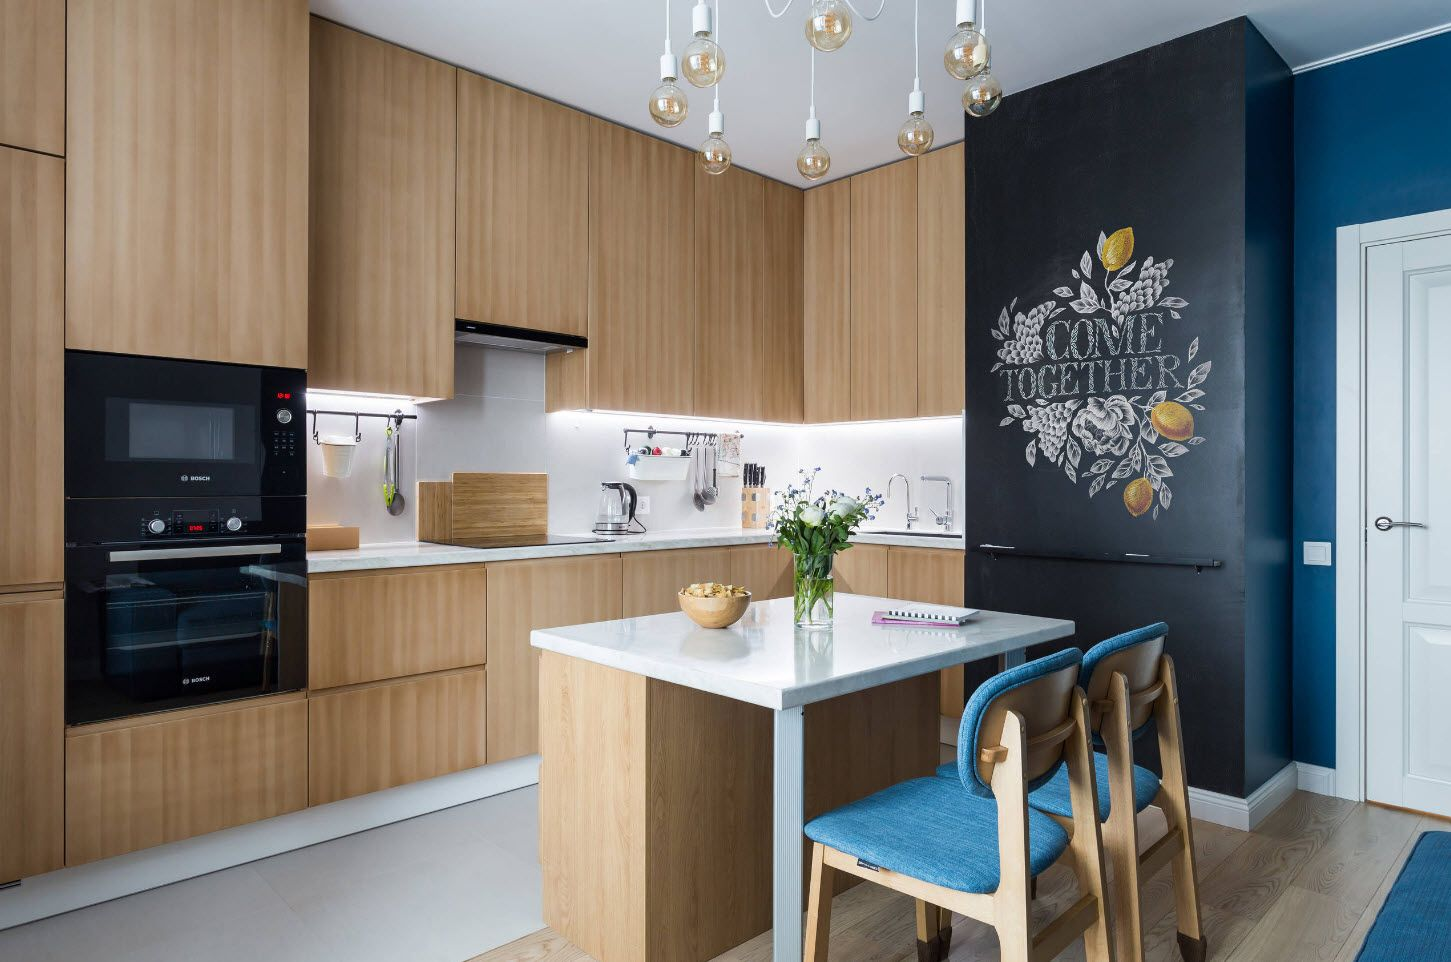 Scandi styled kitchen interior with bleached oak color for furniture